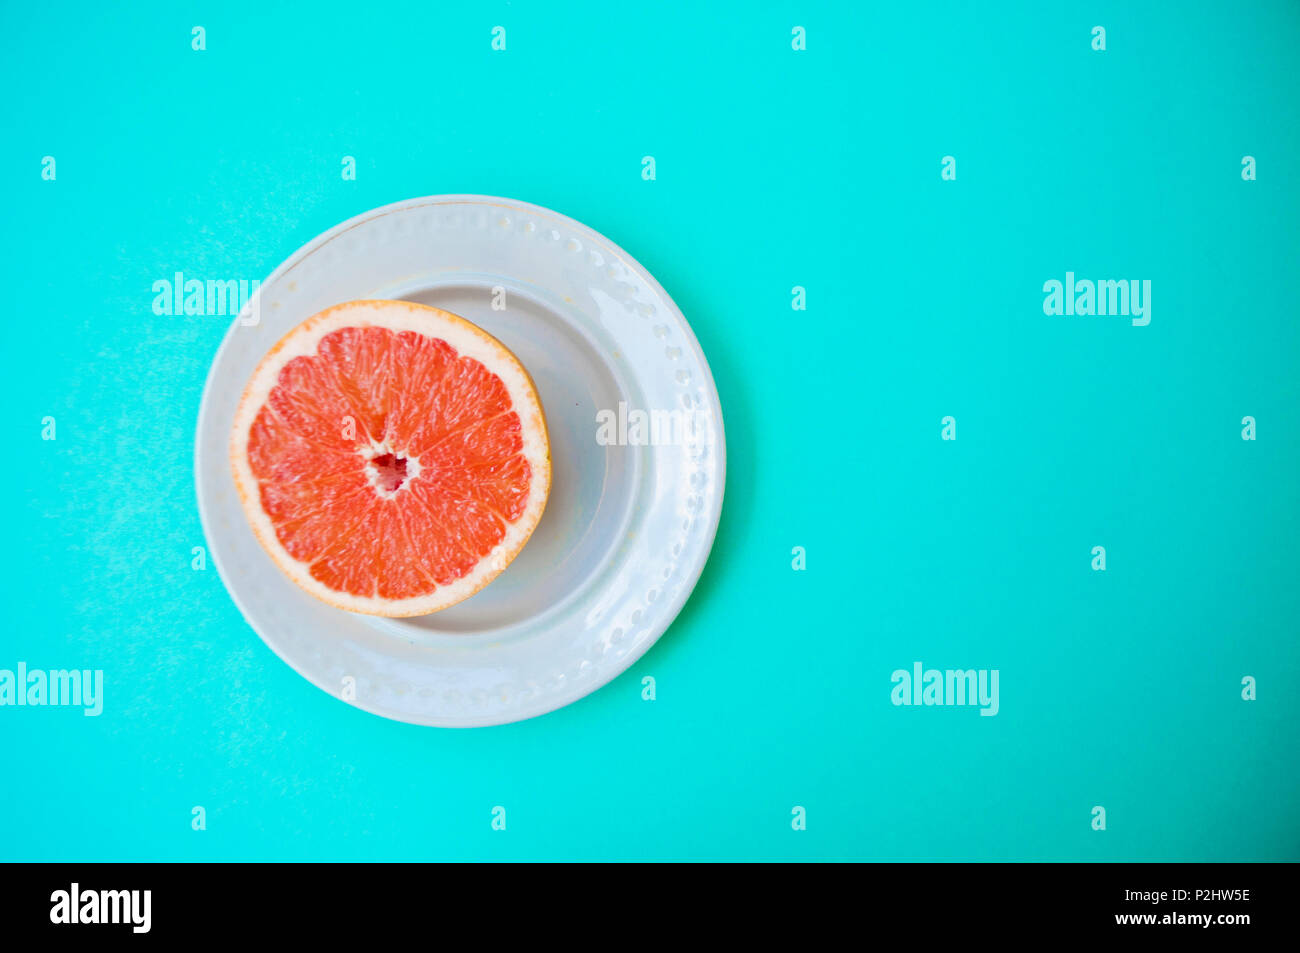 Ripe juicy cut grapefruit on a white plate on blue background with text space. - Stock Image